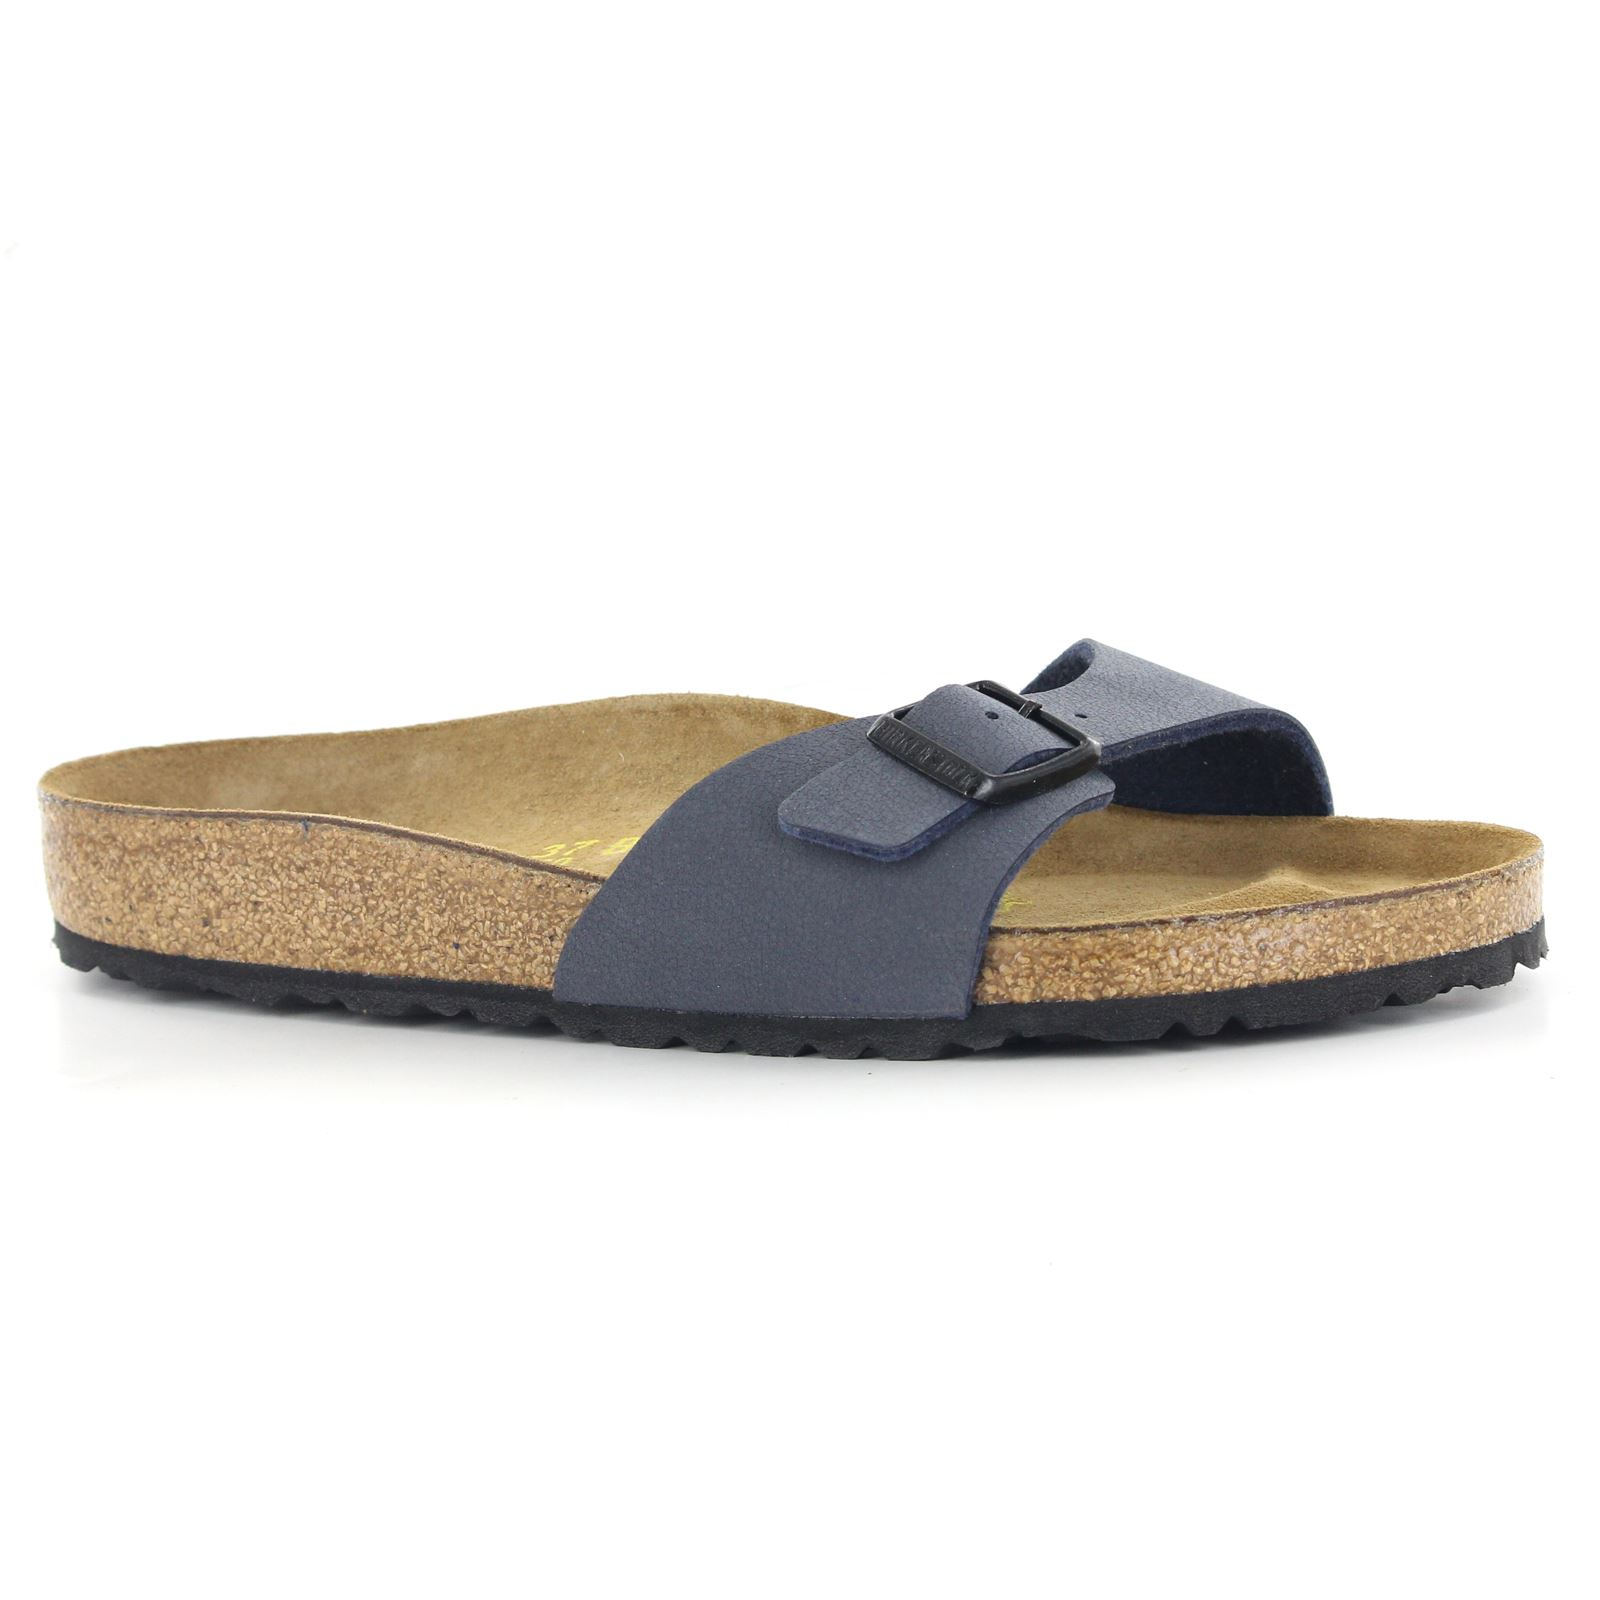 4fc7e82d764 Buy Chocolate Birkenstock Madrid Sandals Clearance Comfortable ...